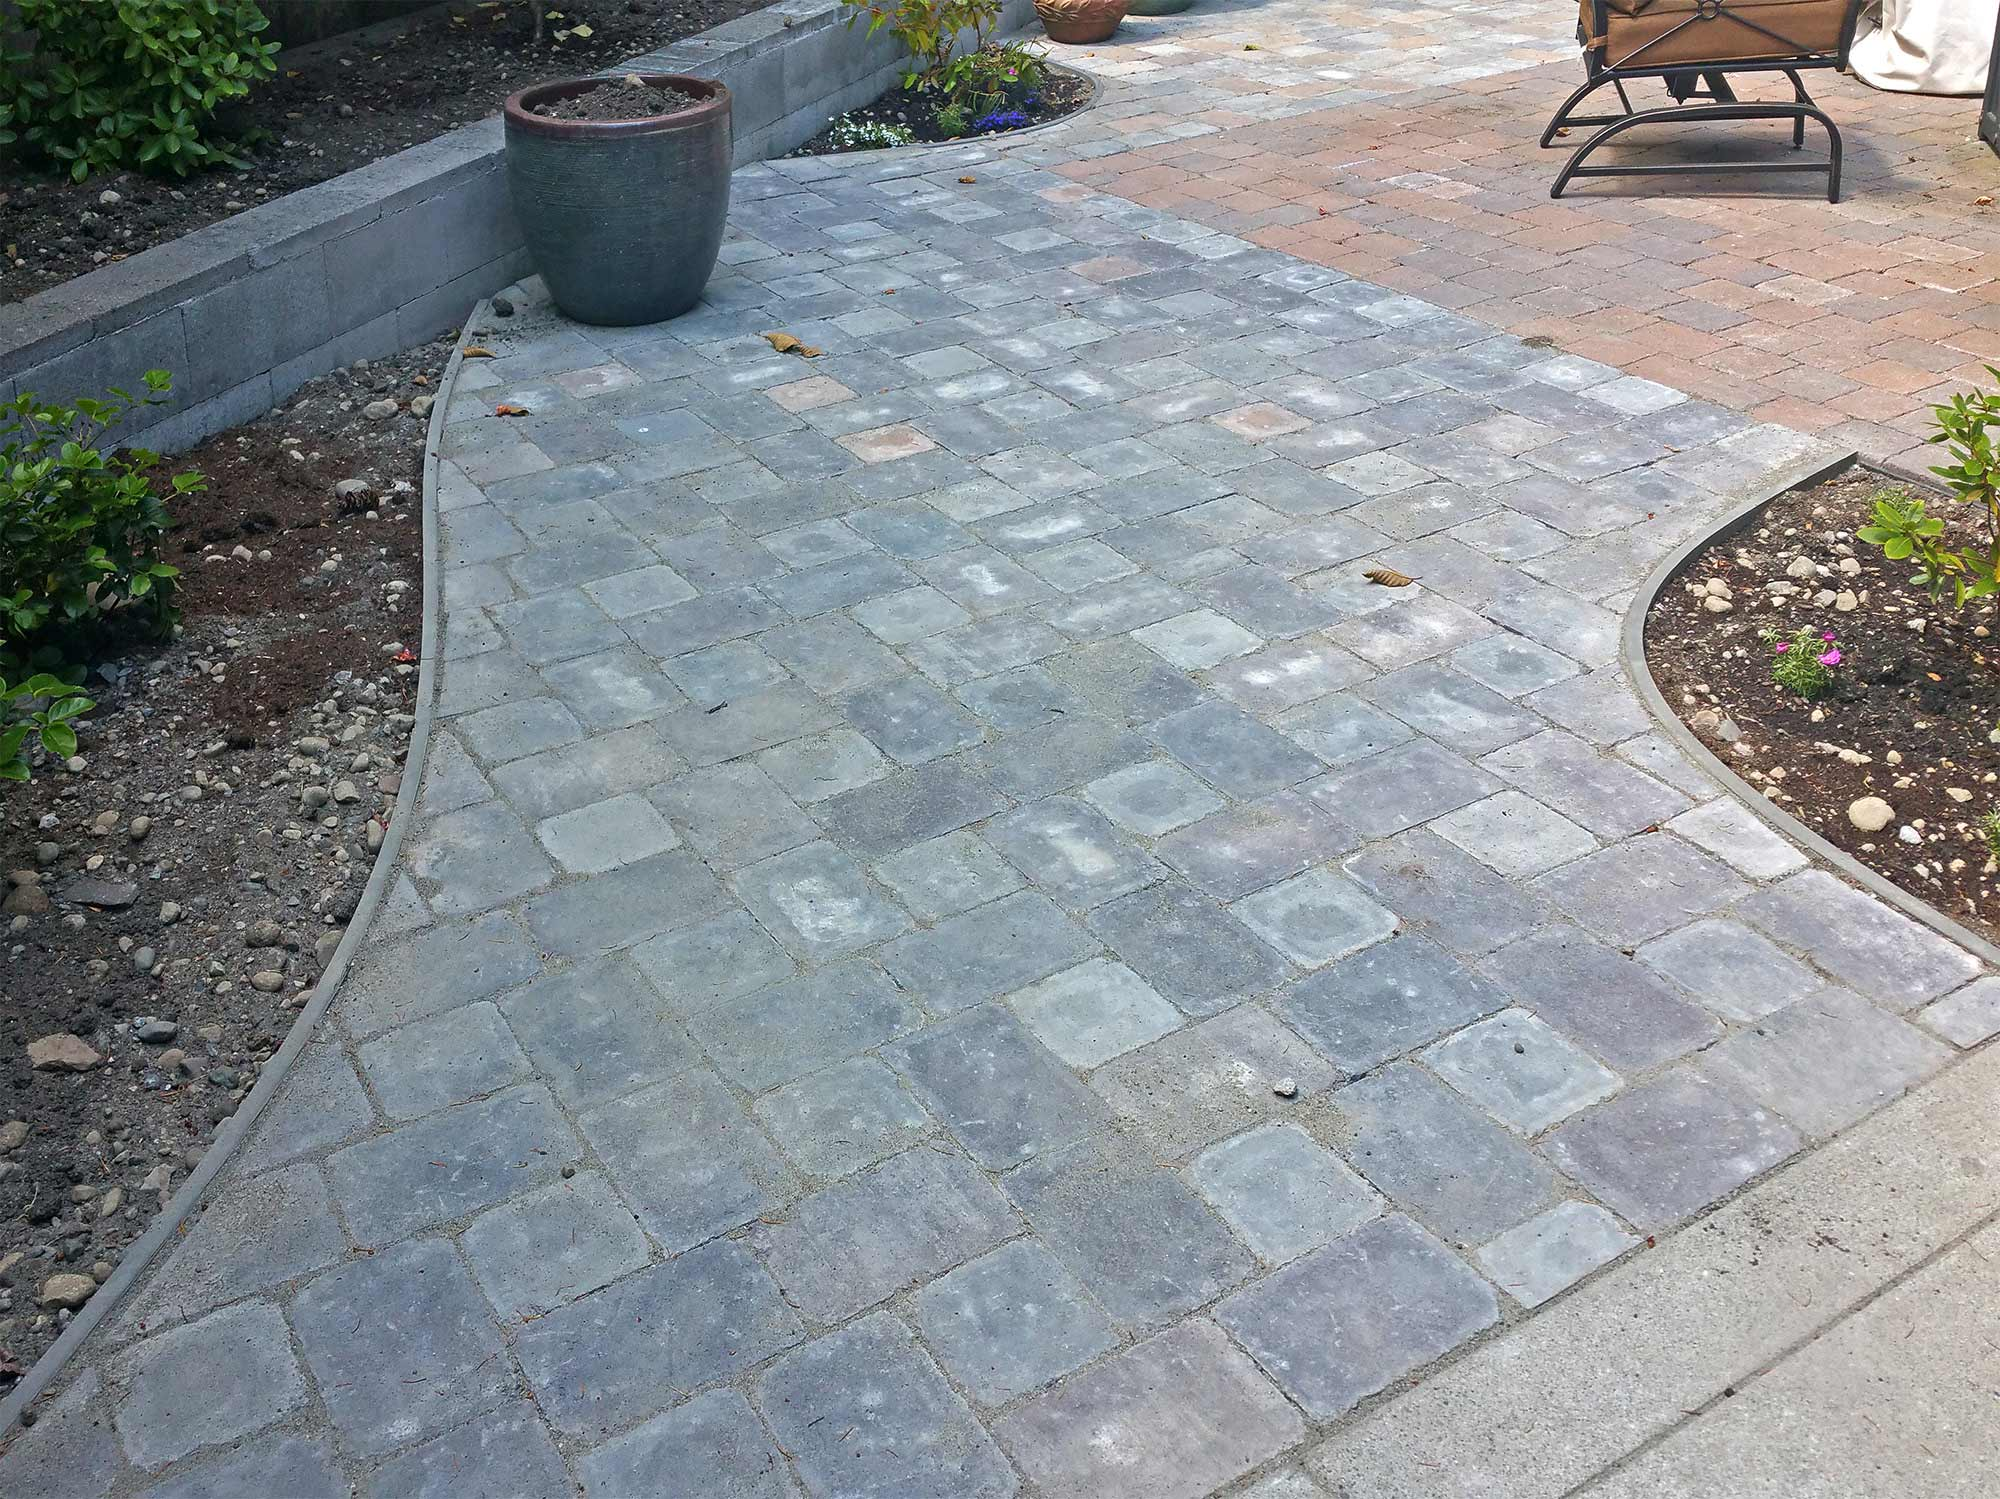 The new paver extension creates a more unique space while also connecting with concrete slabs on both sides.